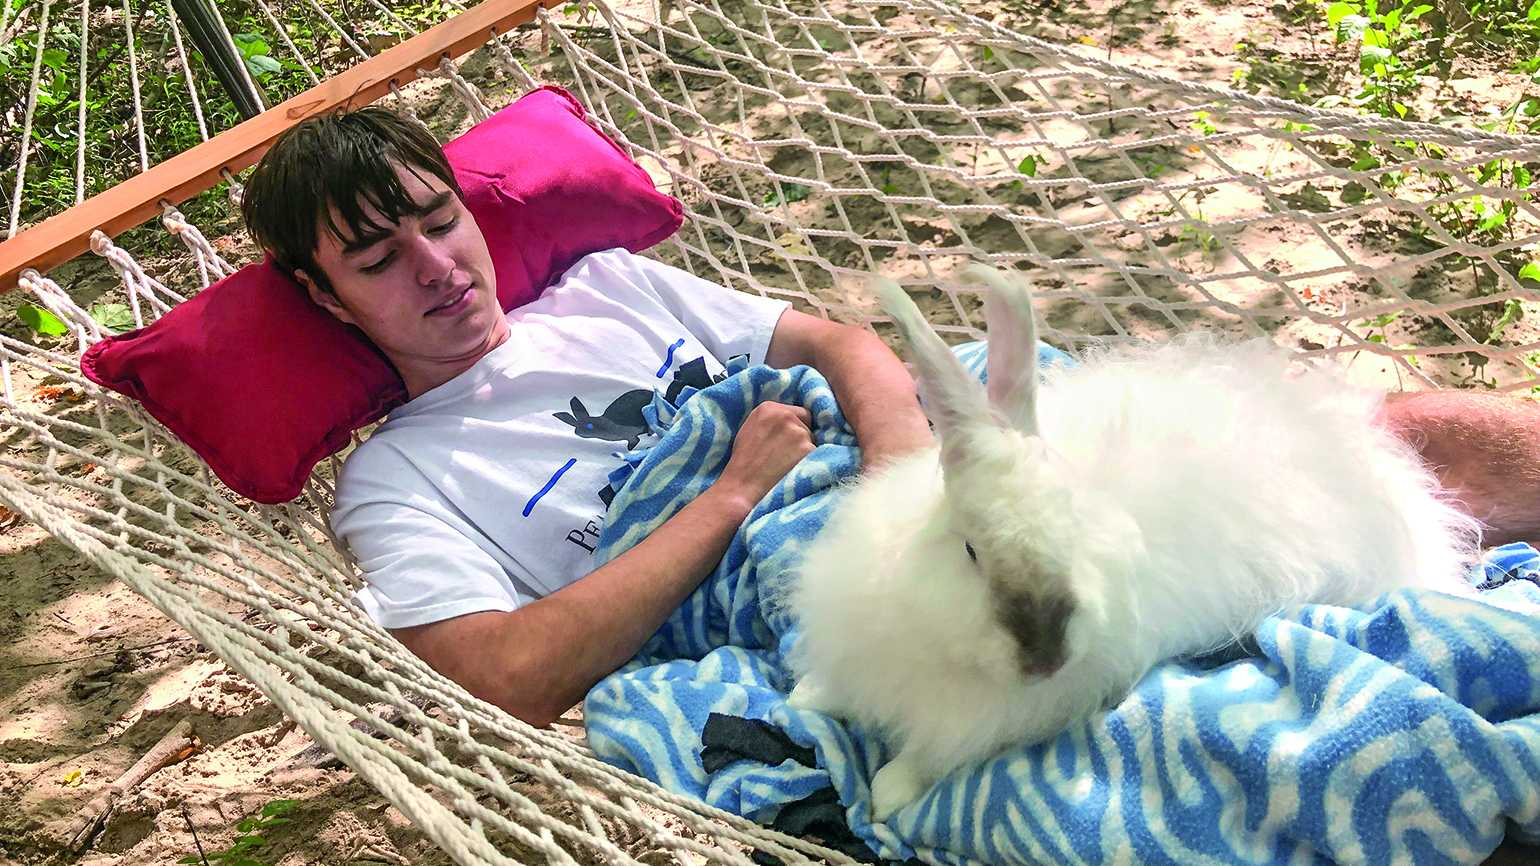 Caleb Smith relaxing on a hammock with a bunny